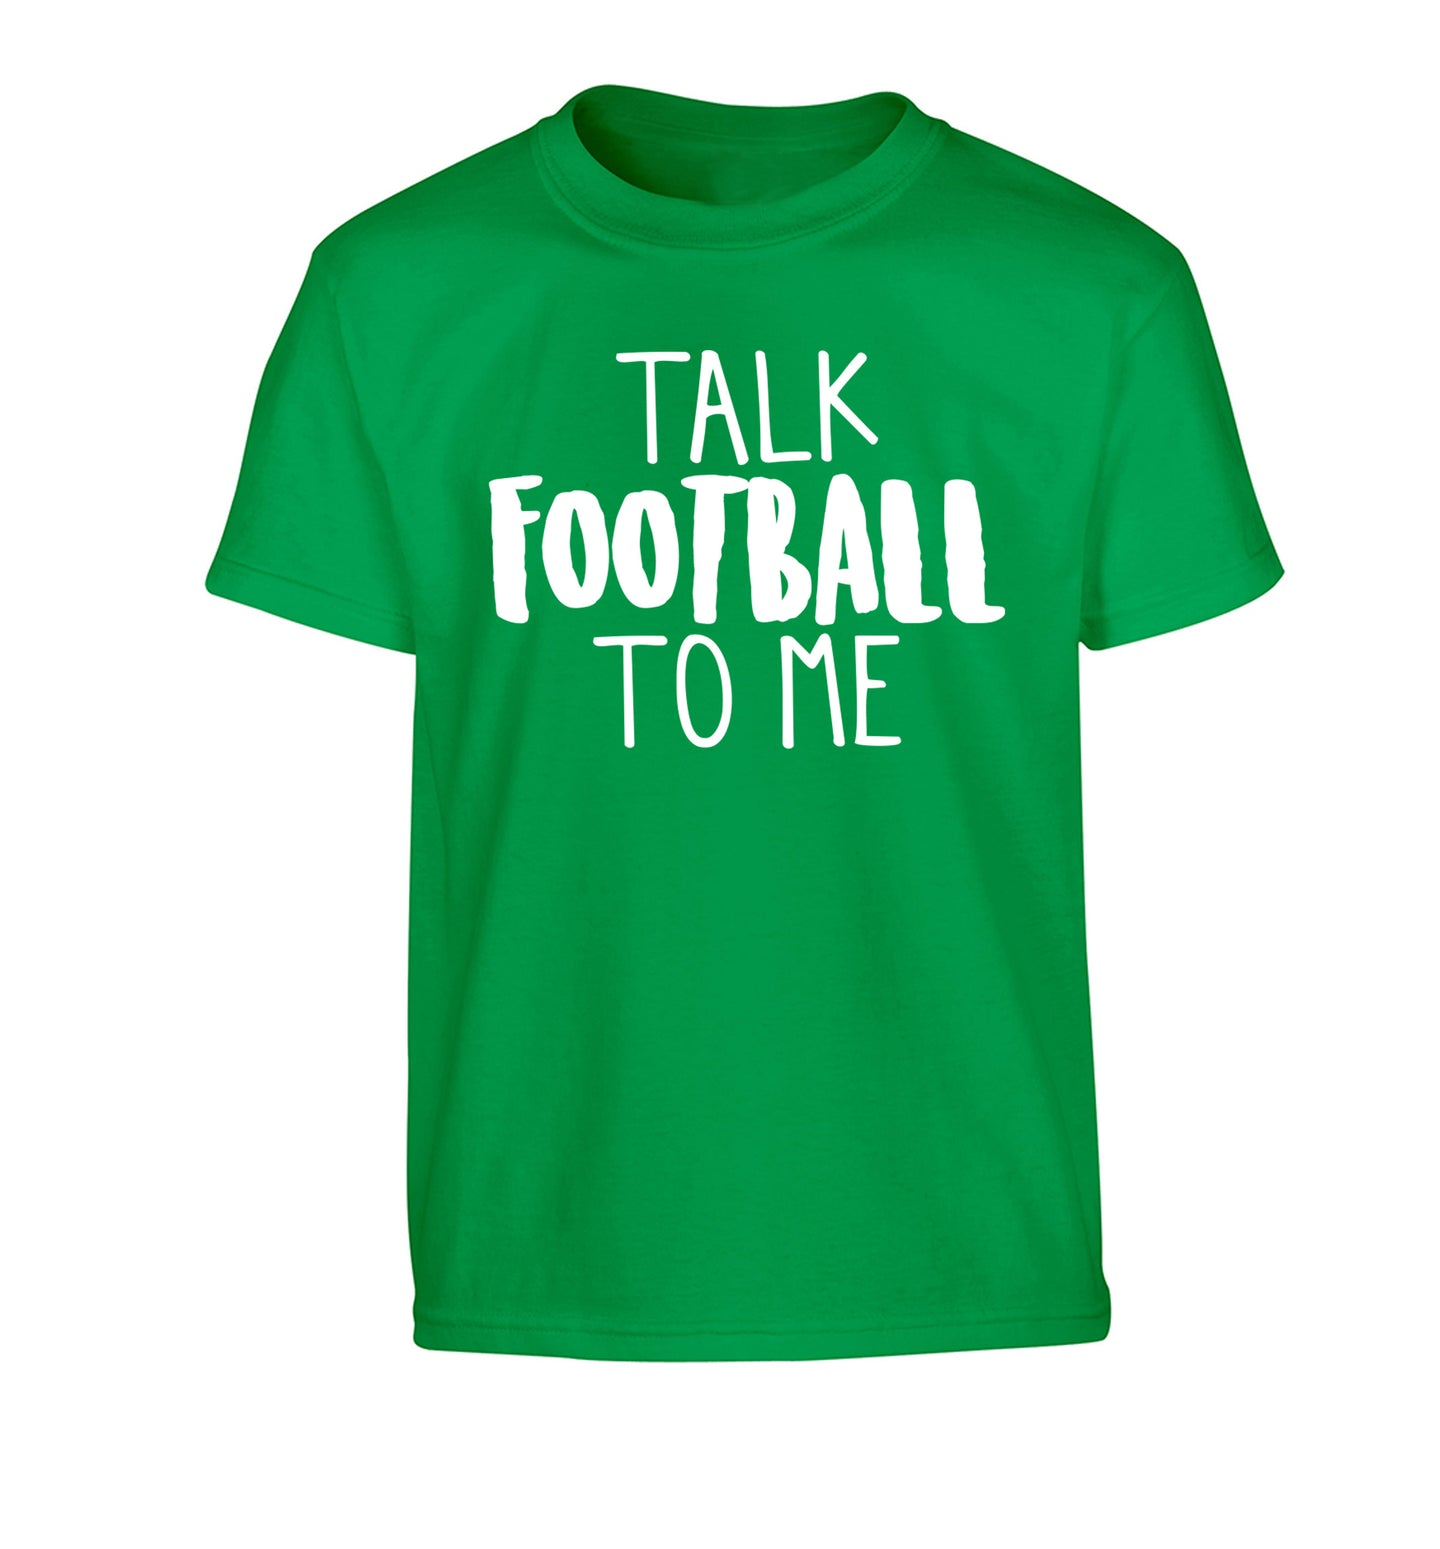 Talk football to me Children's green Tshirt 12-14 Years